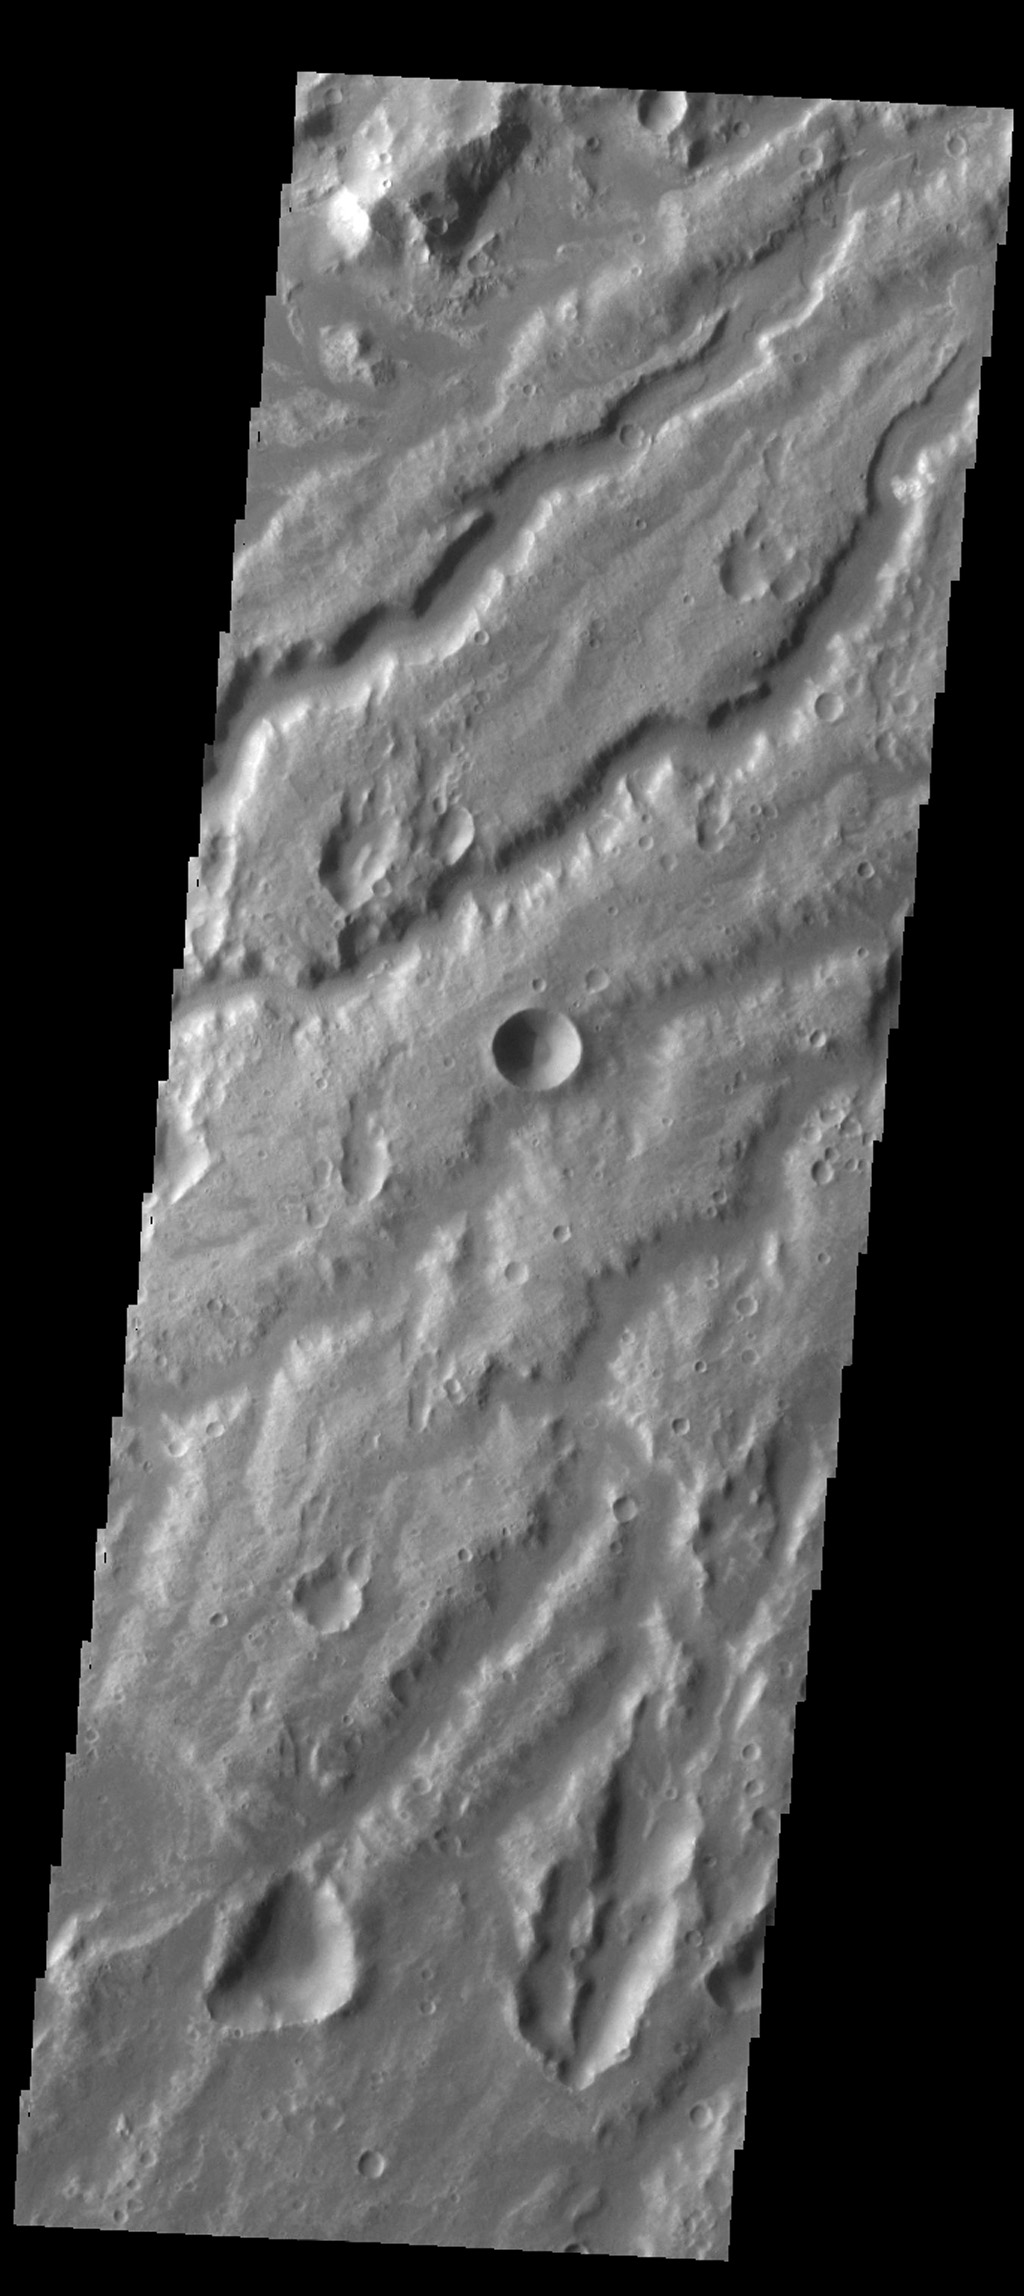 The channels in this image from NASA's 2001 Mars Odyssey spacecraft are a small portion of the channel complex called Arda Valles.